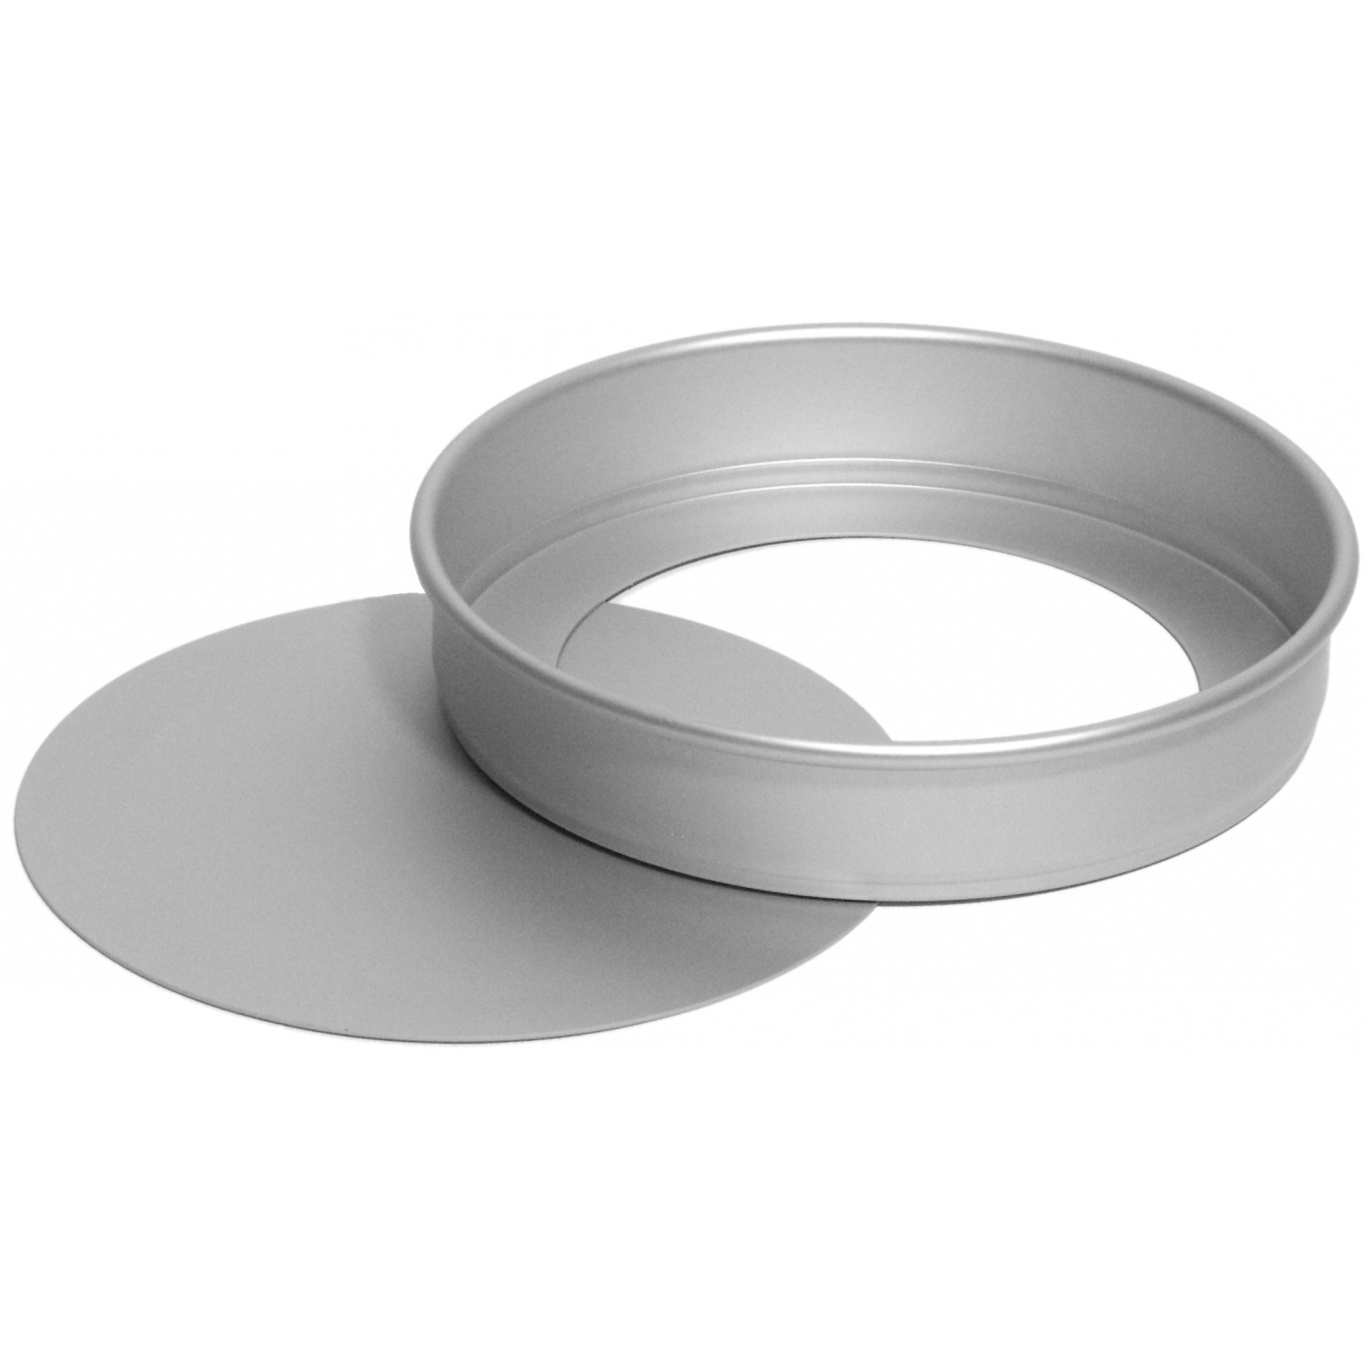 Image of Silverwood Round Sandwich Pan Loose Base 9ins/23cm